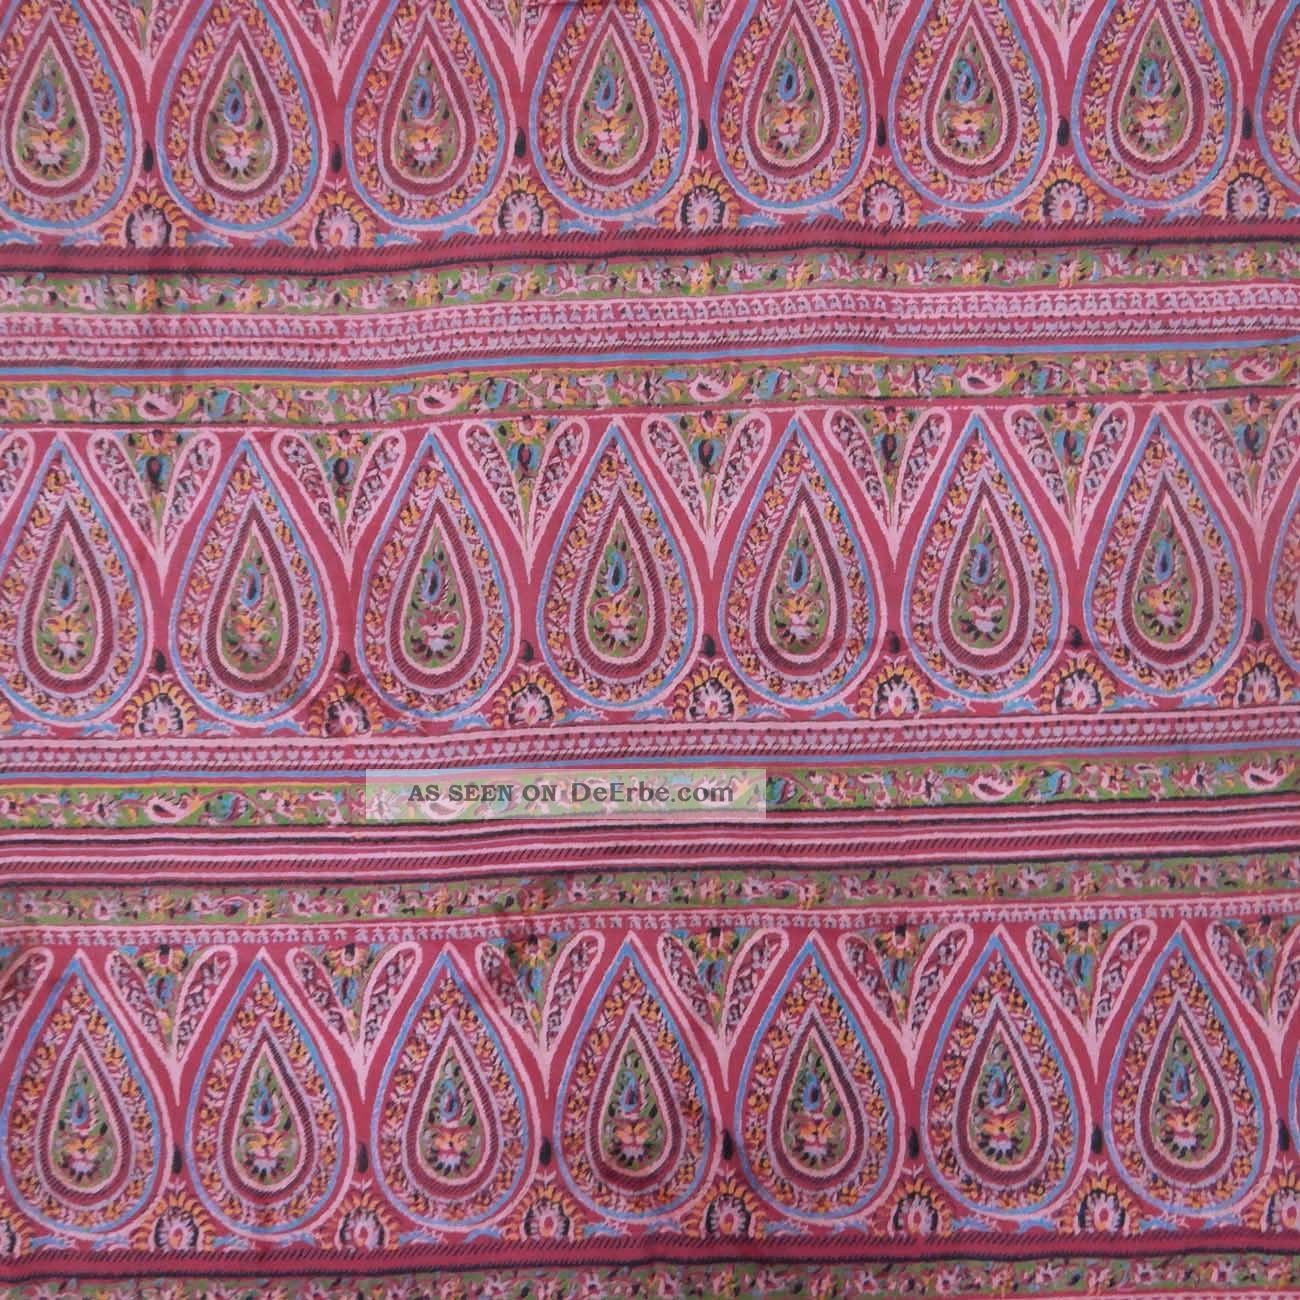 Vintage Indian Saree Pure Silk Printed Fabric Décor Craft Floral